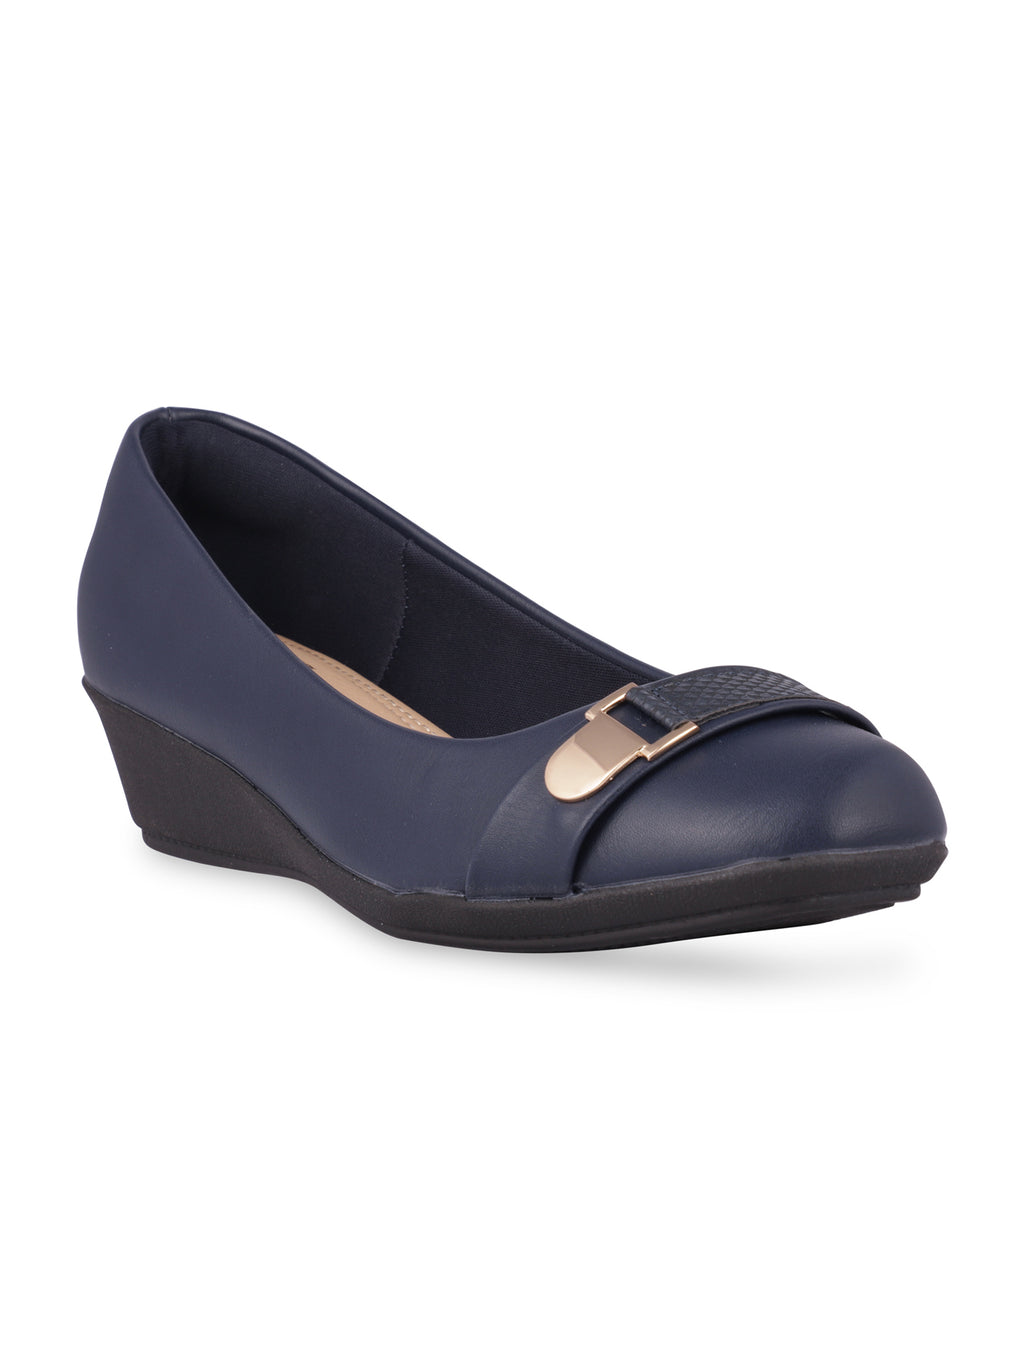 Adelyn Navy Round Toe Pumps